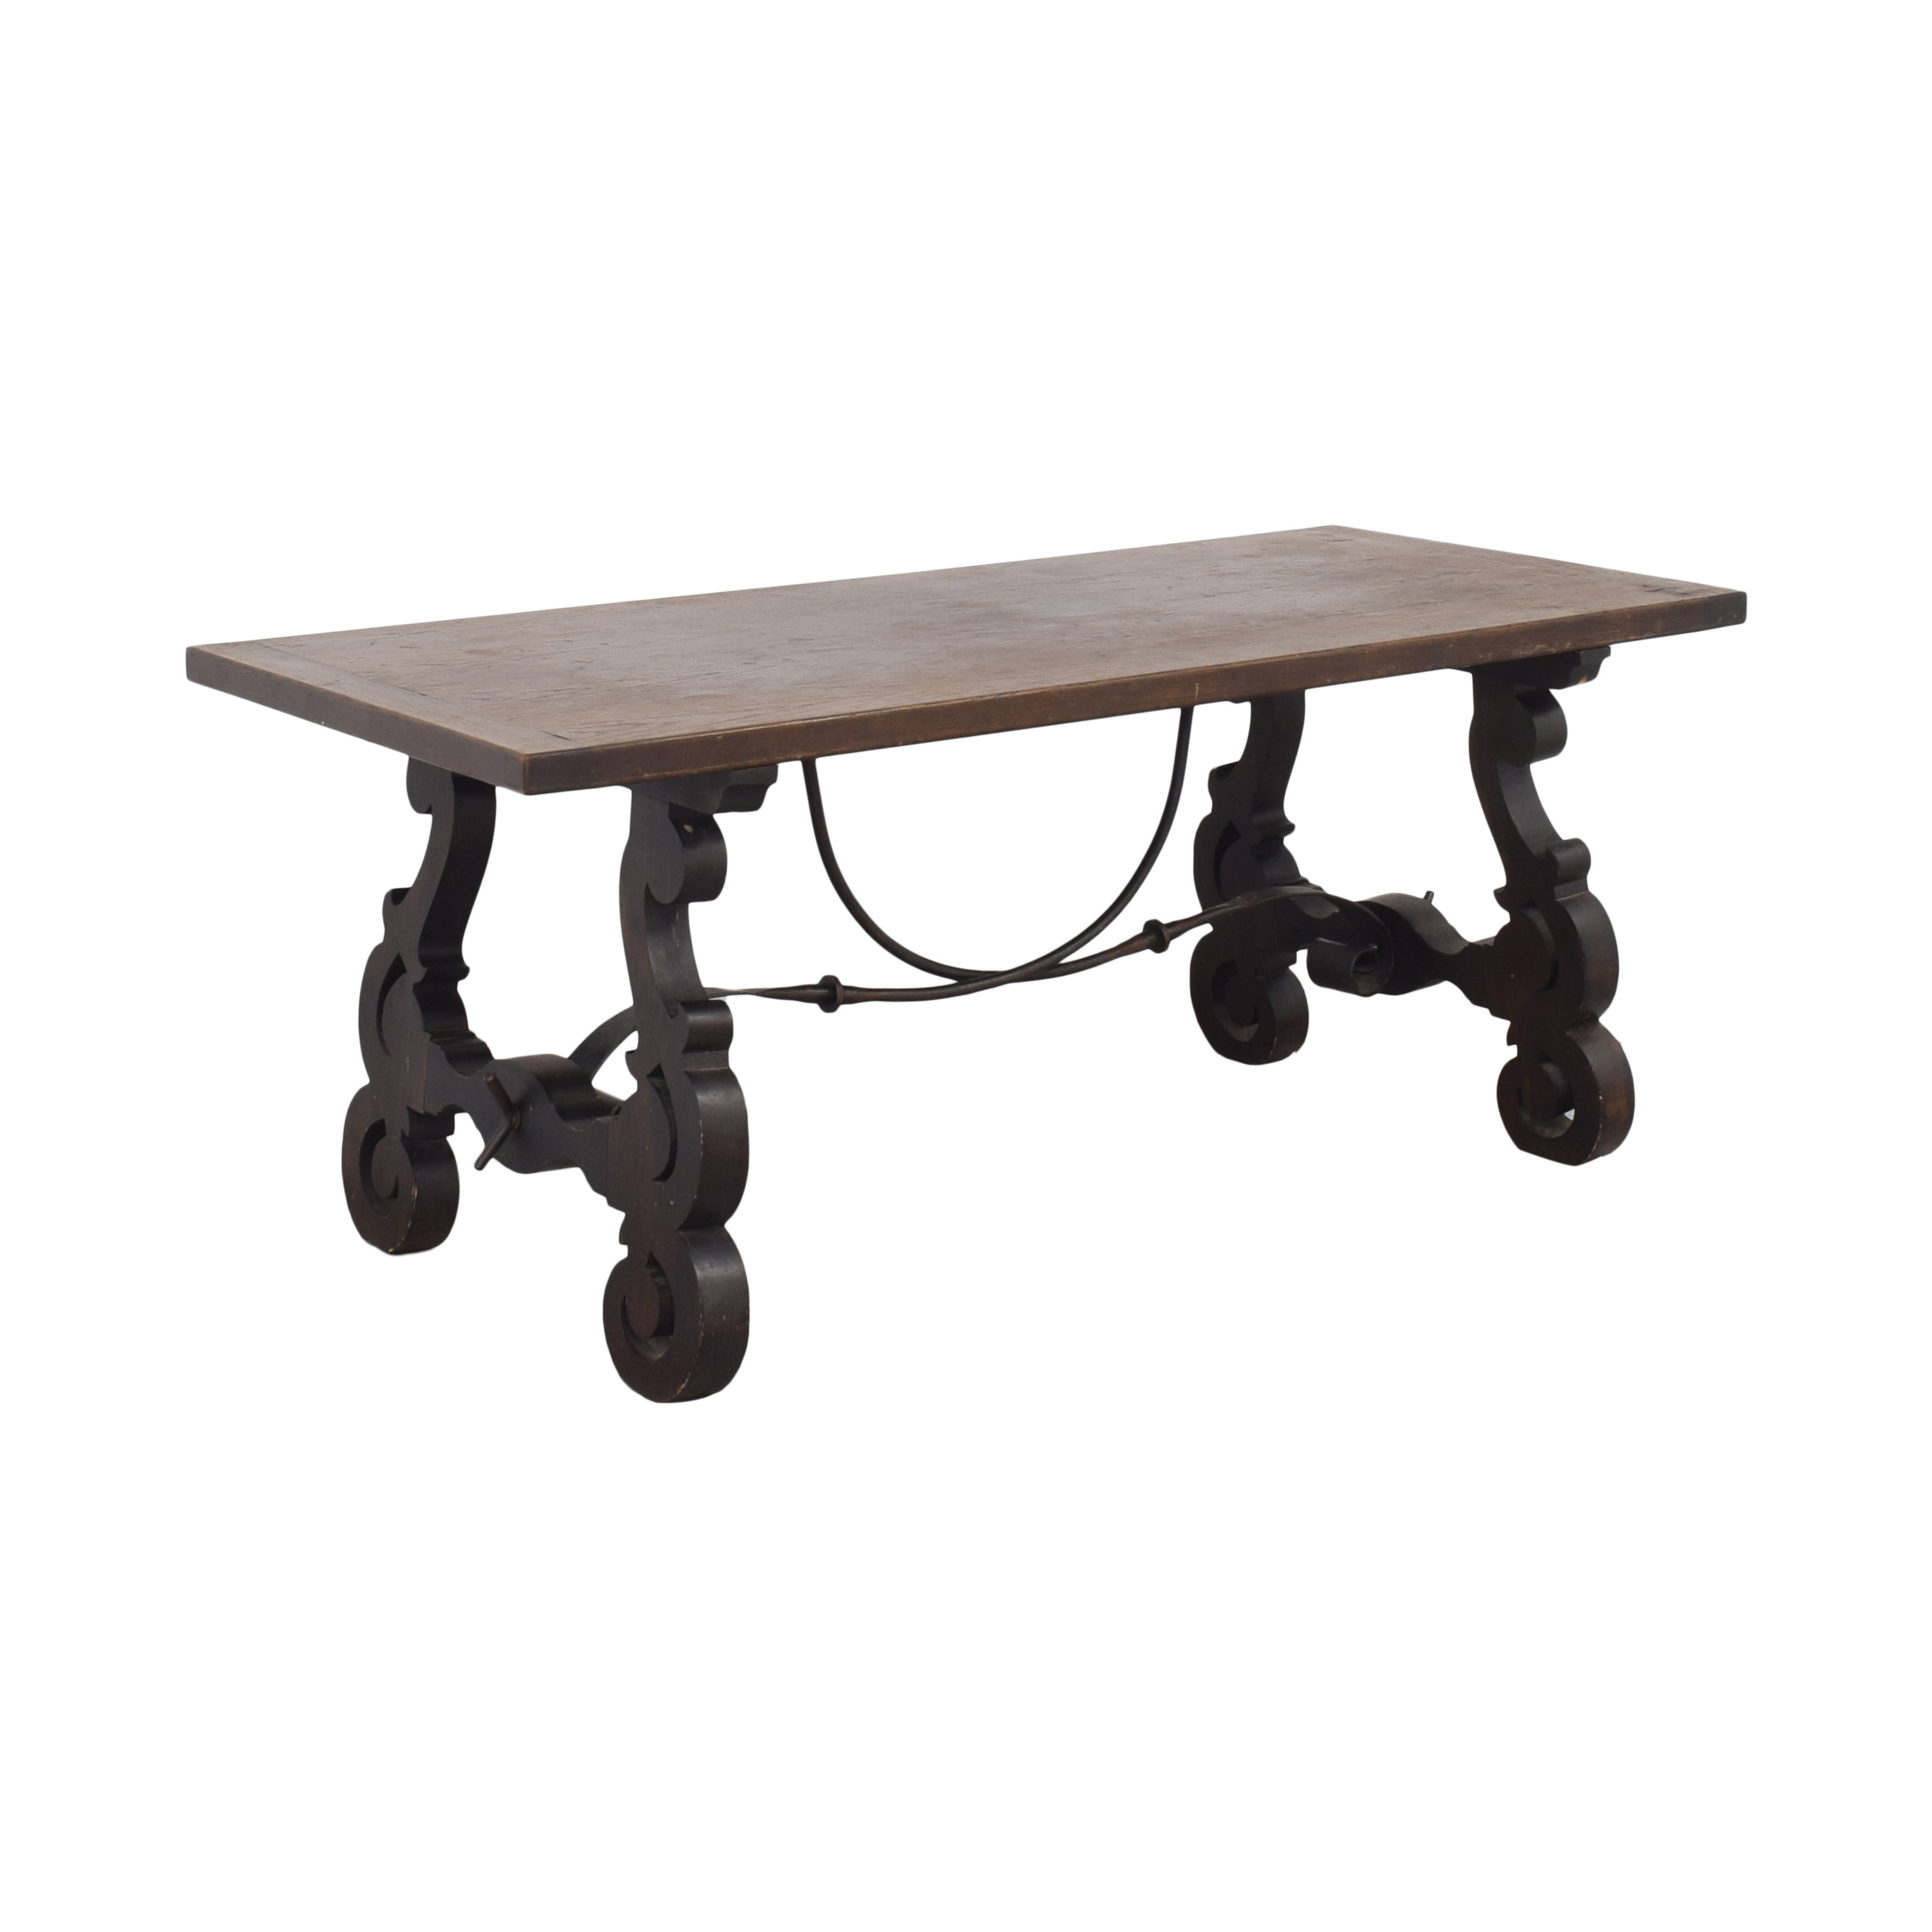 ABC Carpet & Home ABC Carpet & Home Dining Table discount